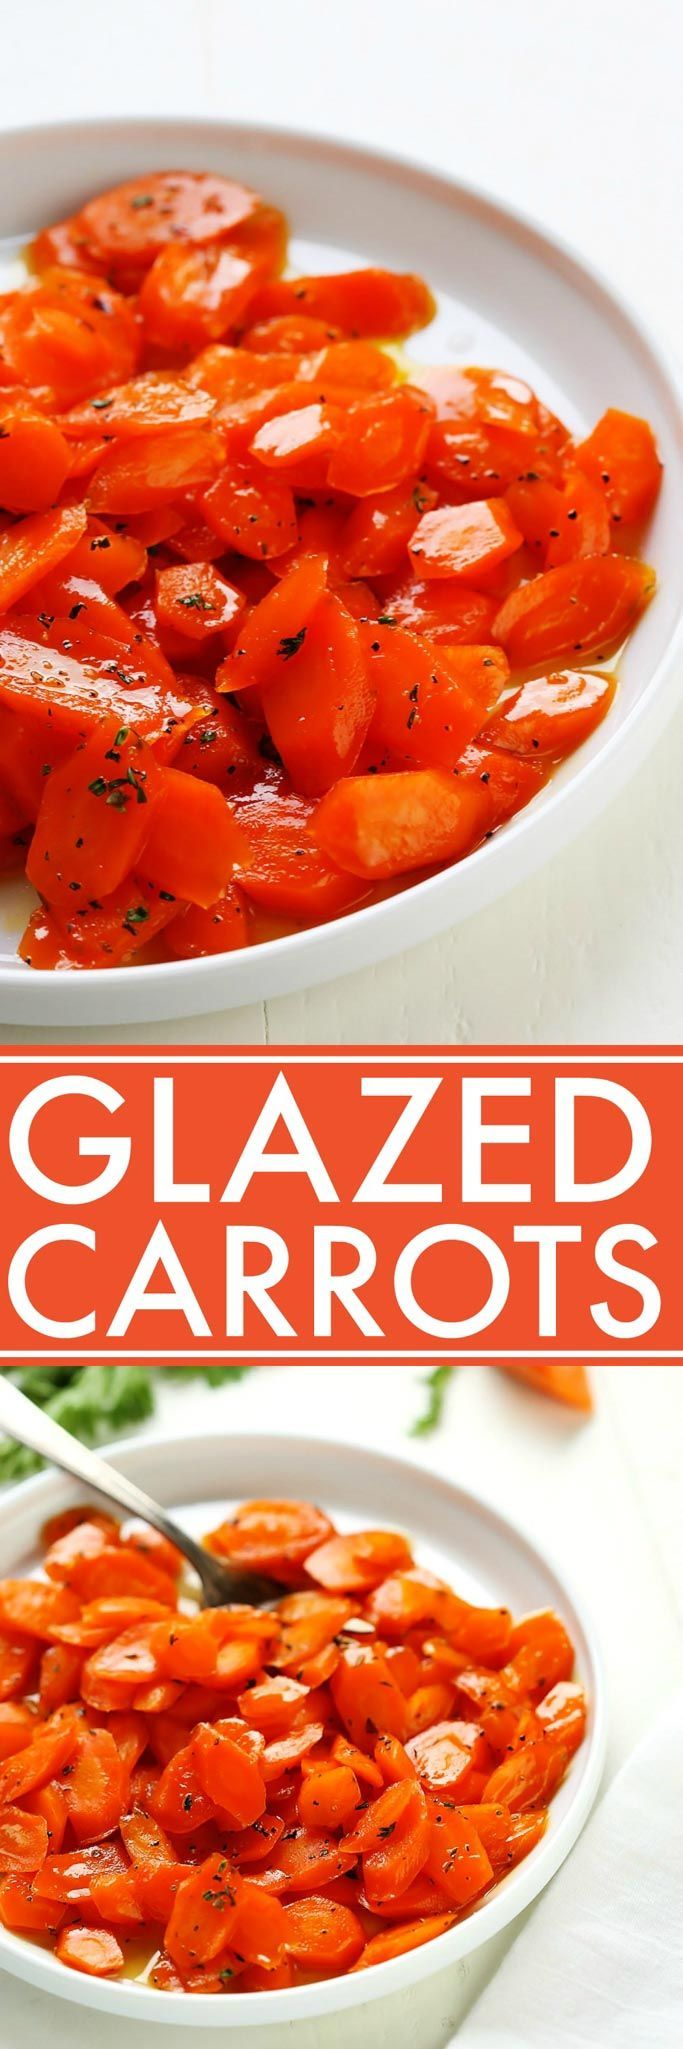 These are the BEST Glazed Carrots! Lightly sweetened, delicately seasoned & perfectly glazed. They make an amazing side dish that both kids & adults love. | platingsandpairings.com